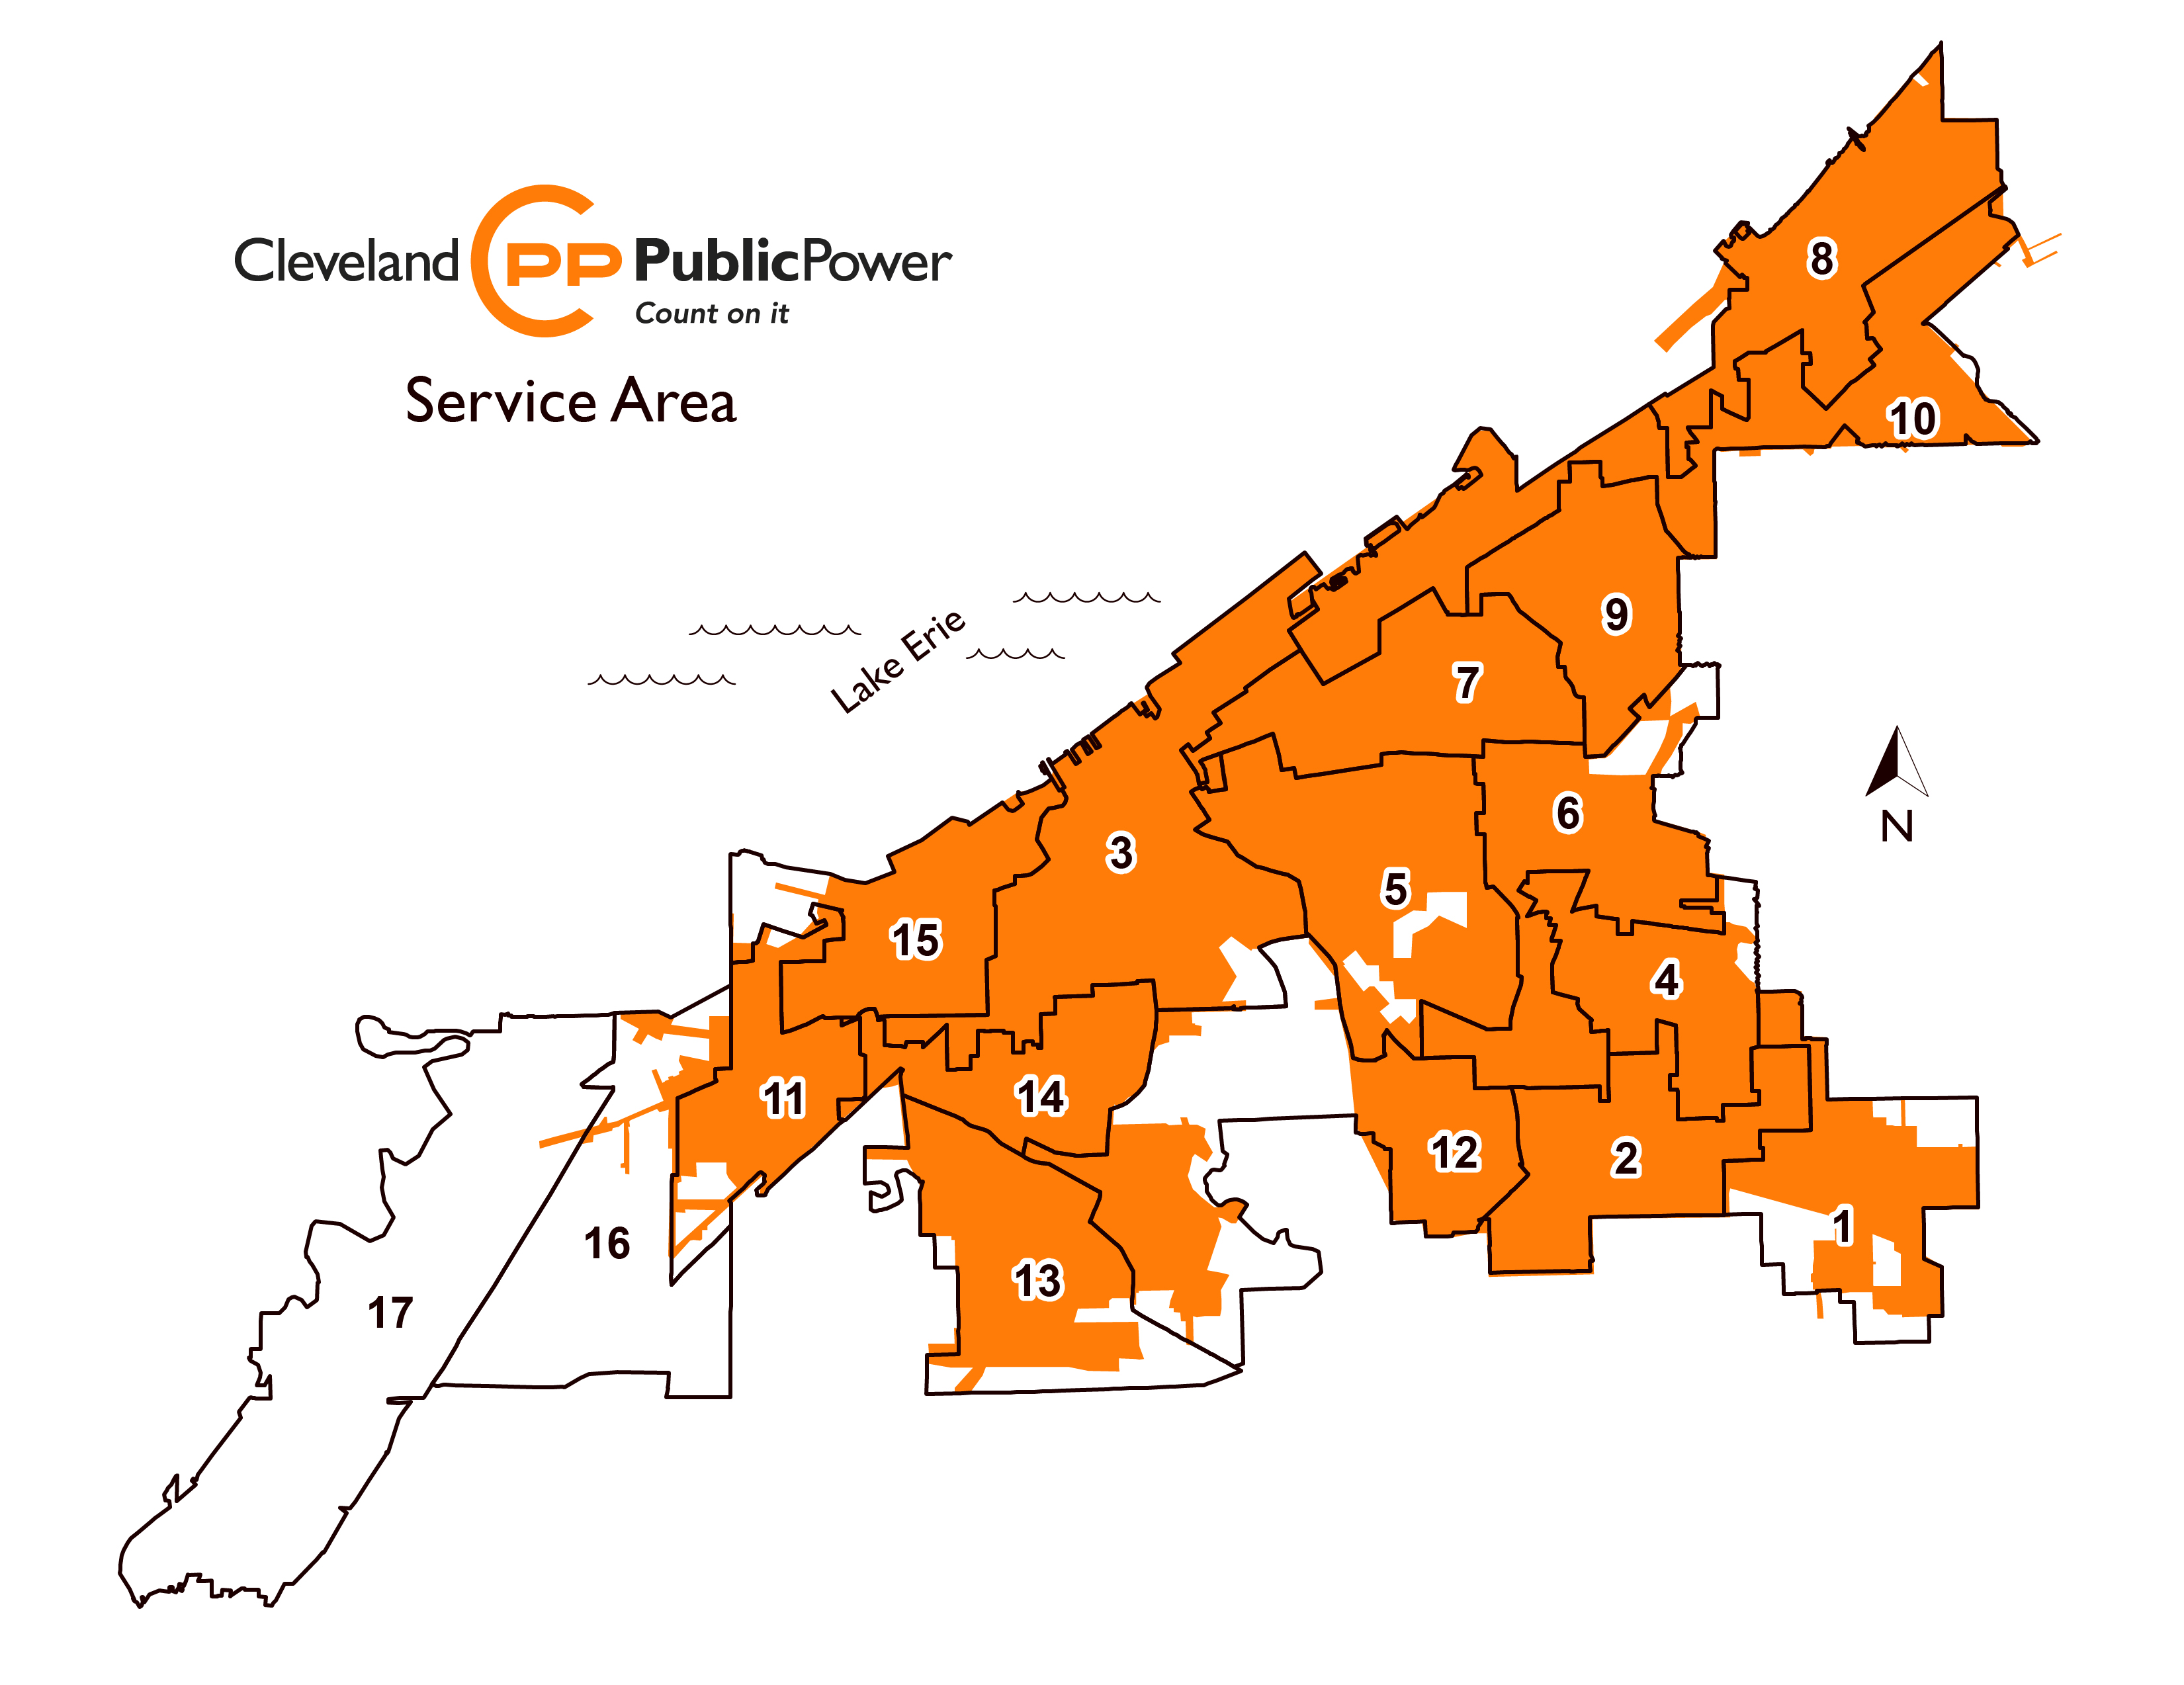 Map of Cleveland Public Power Service Area